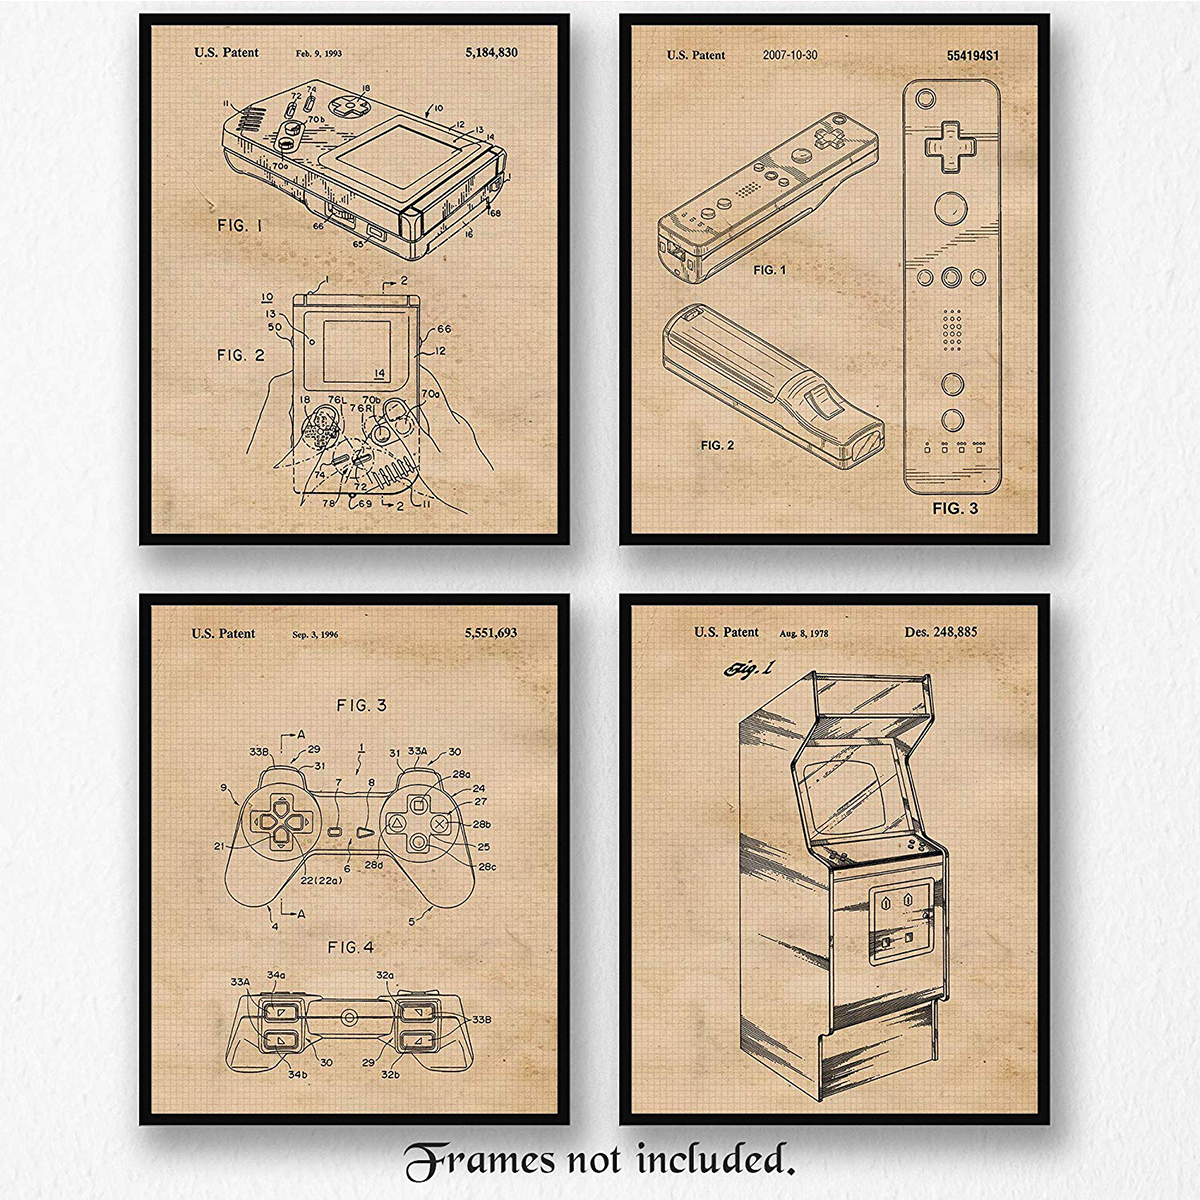 + Previous generation video game console diagrams - These are so snazzy. Even if you do not like video games, it's hard to deny the appeal of a vintage looking diagram. If your significant other has been a gamer since the early years, they are bound to love these posters. Plus, if it fits your home's aesthetic maybe you could actually let them hang it up!(Image via Amazon)